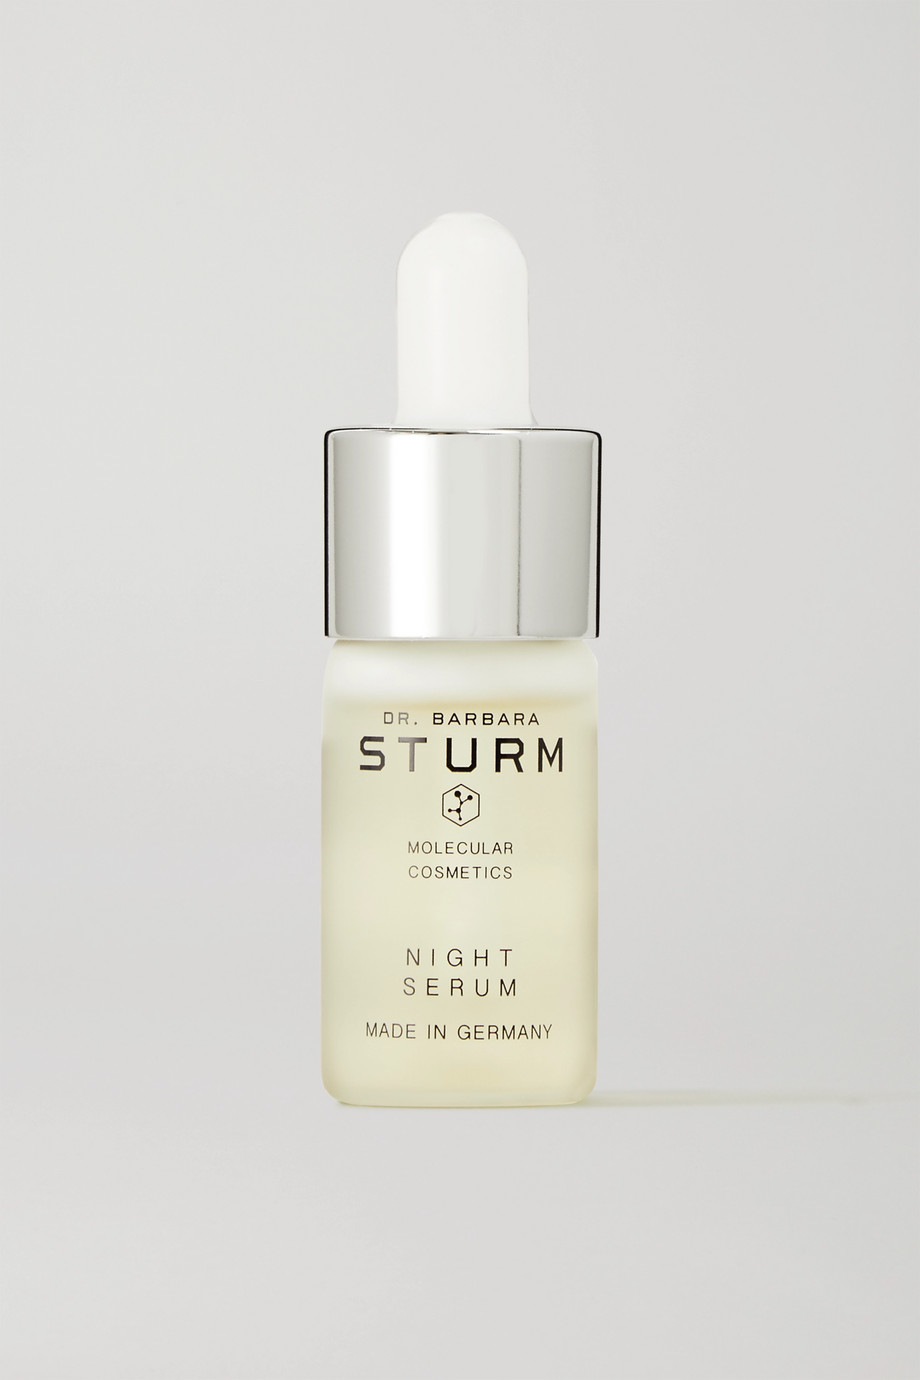 DR. BARBARA STURM Mini Night Serum, 10ml